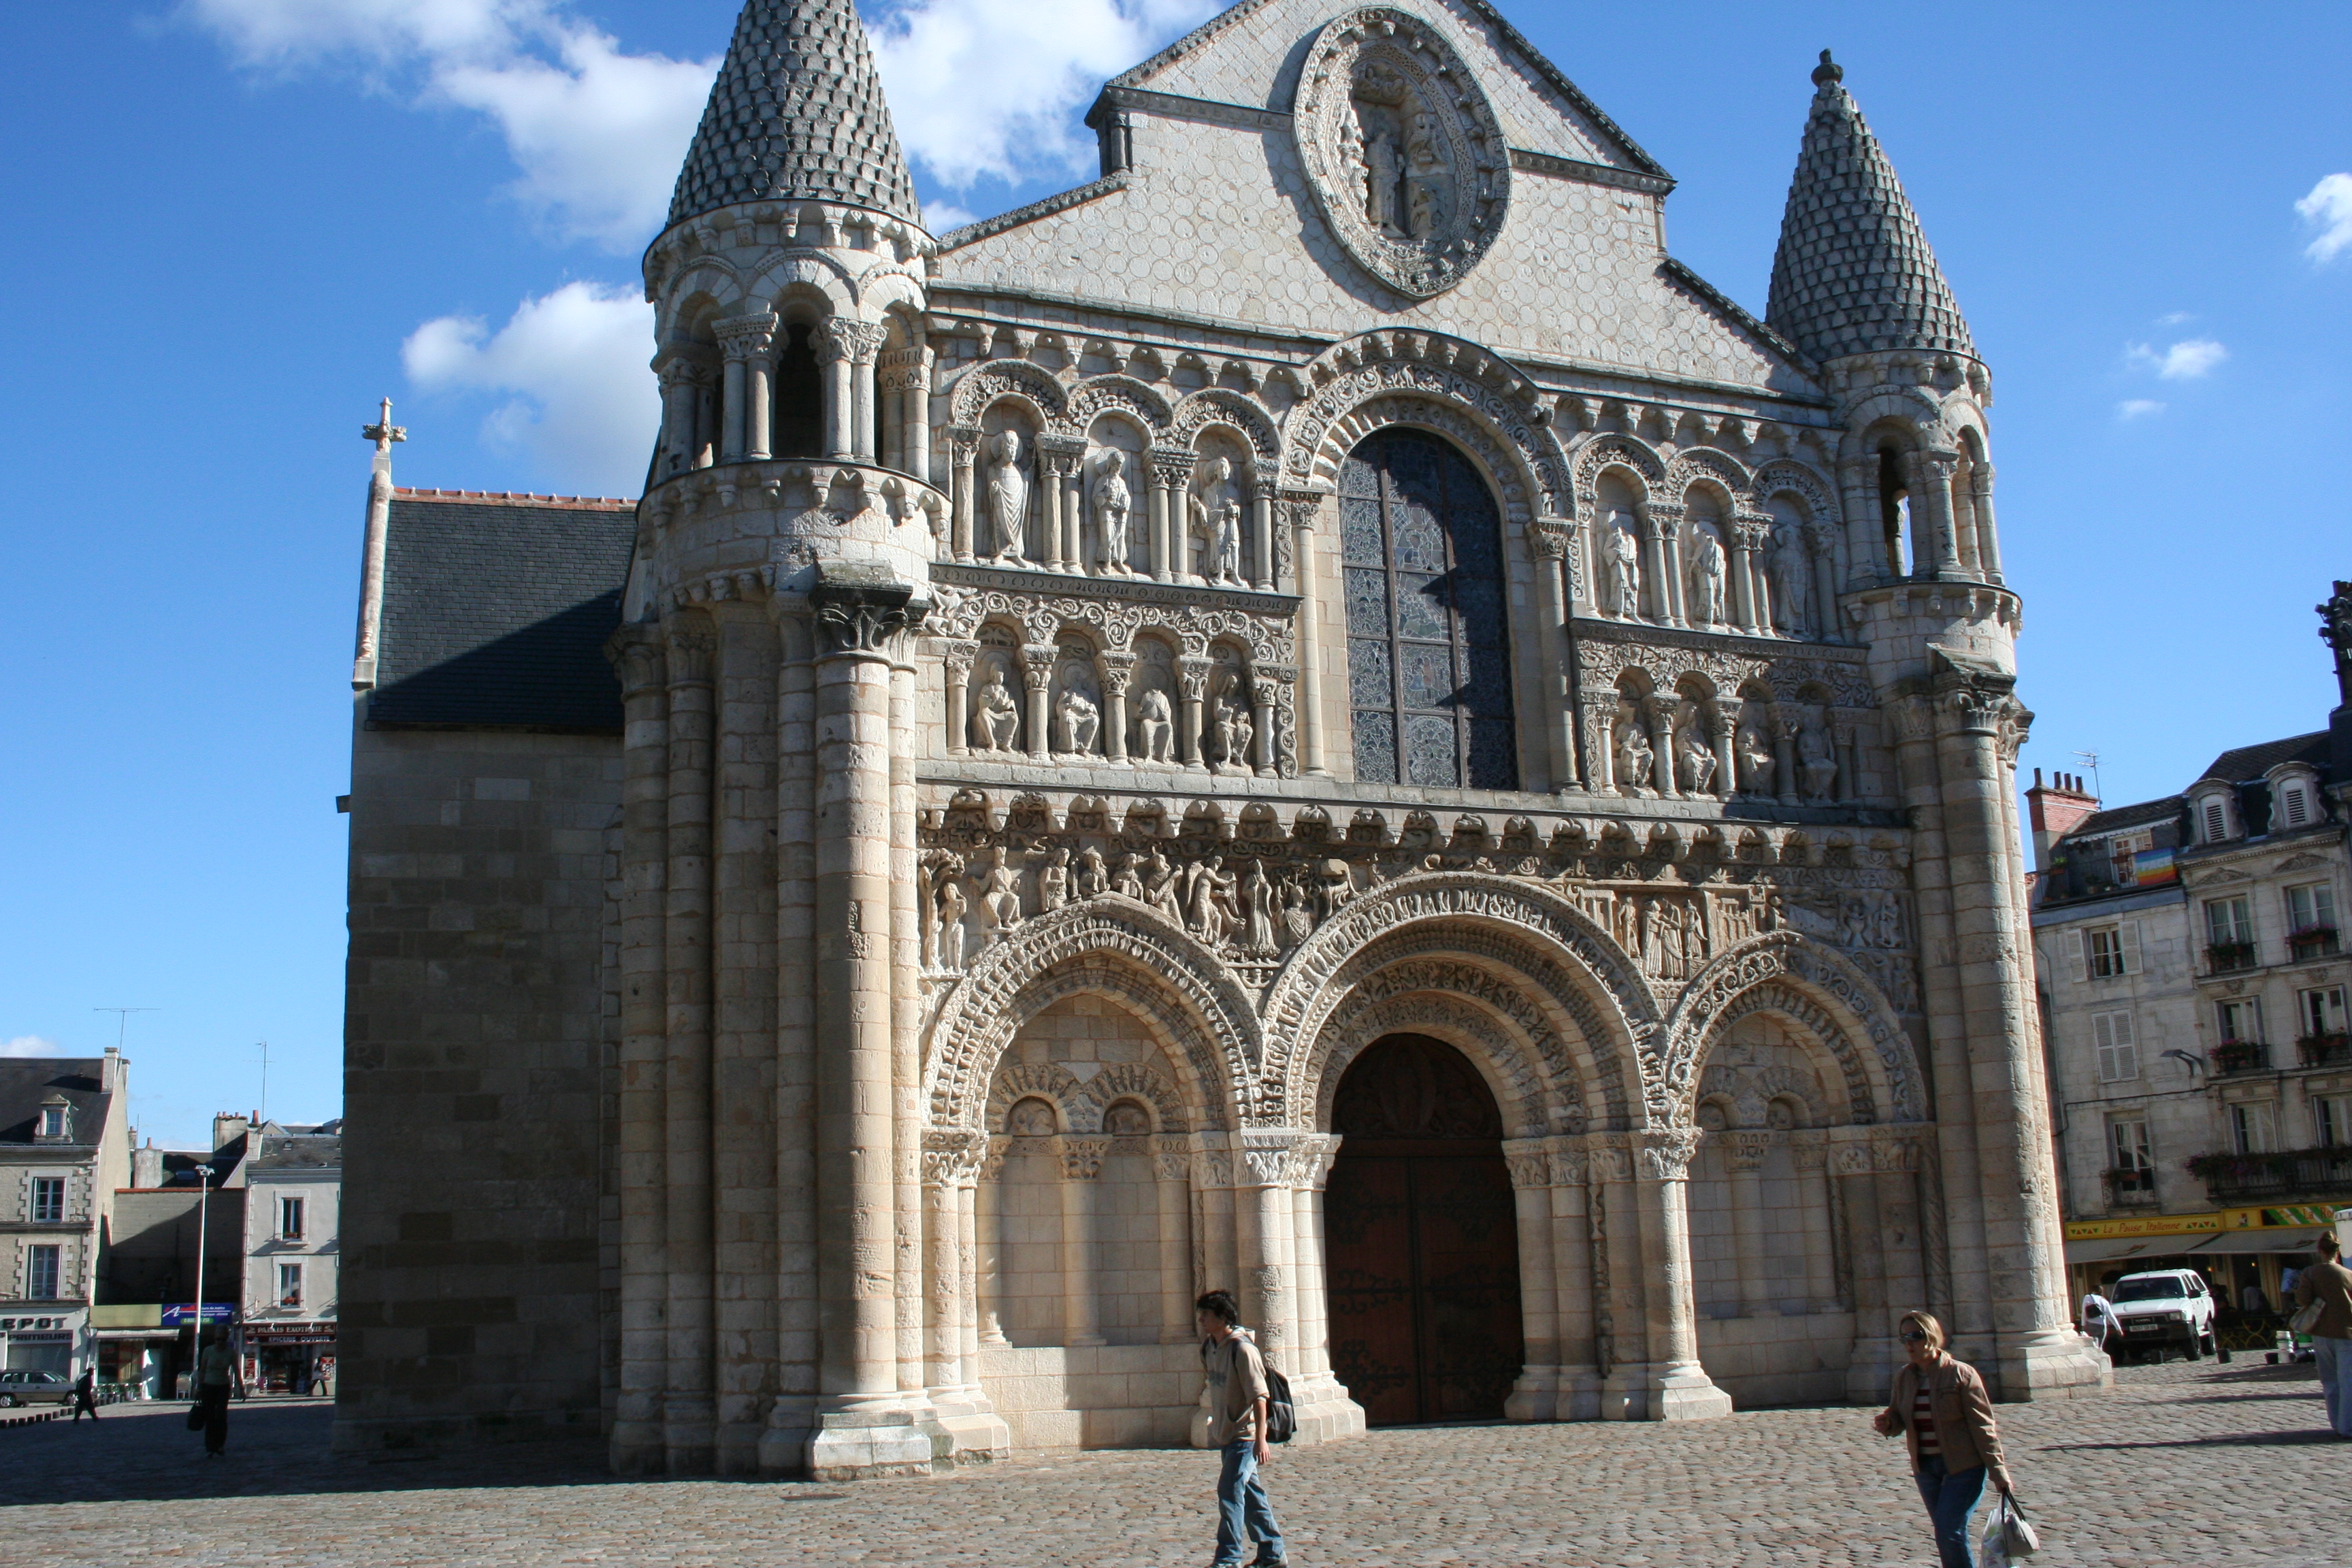 1000 Images About Romanesque On Pinterest 11th Century Architecture And 1